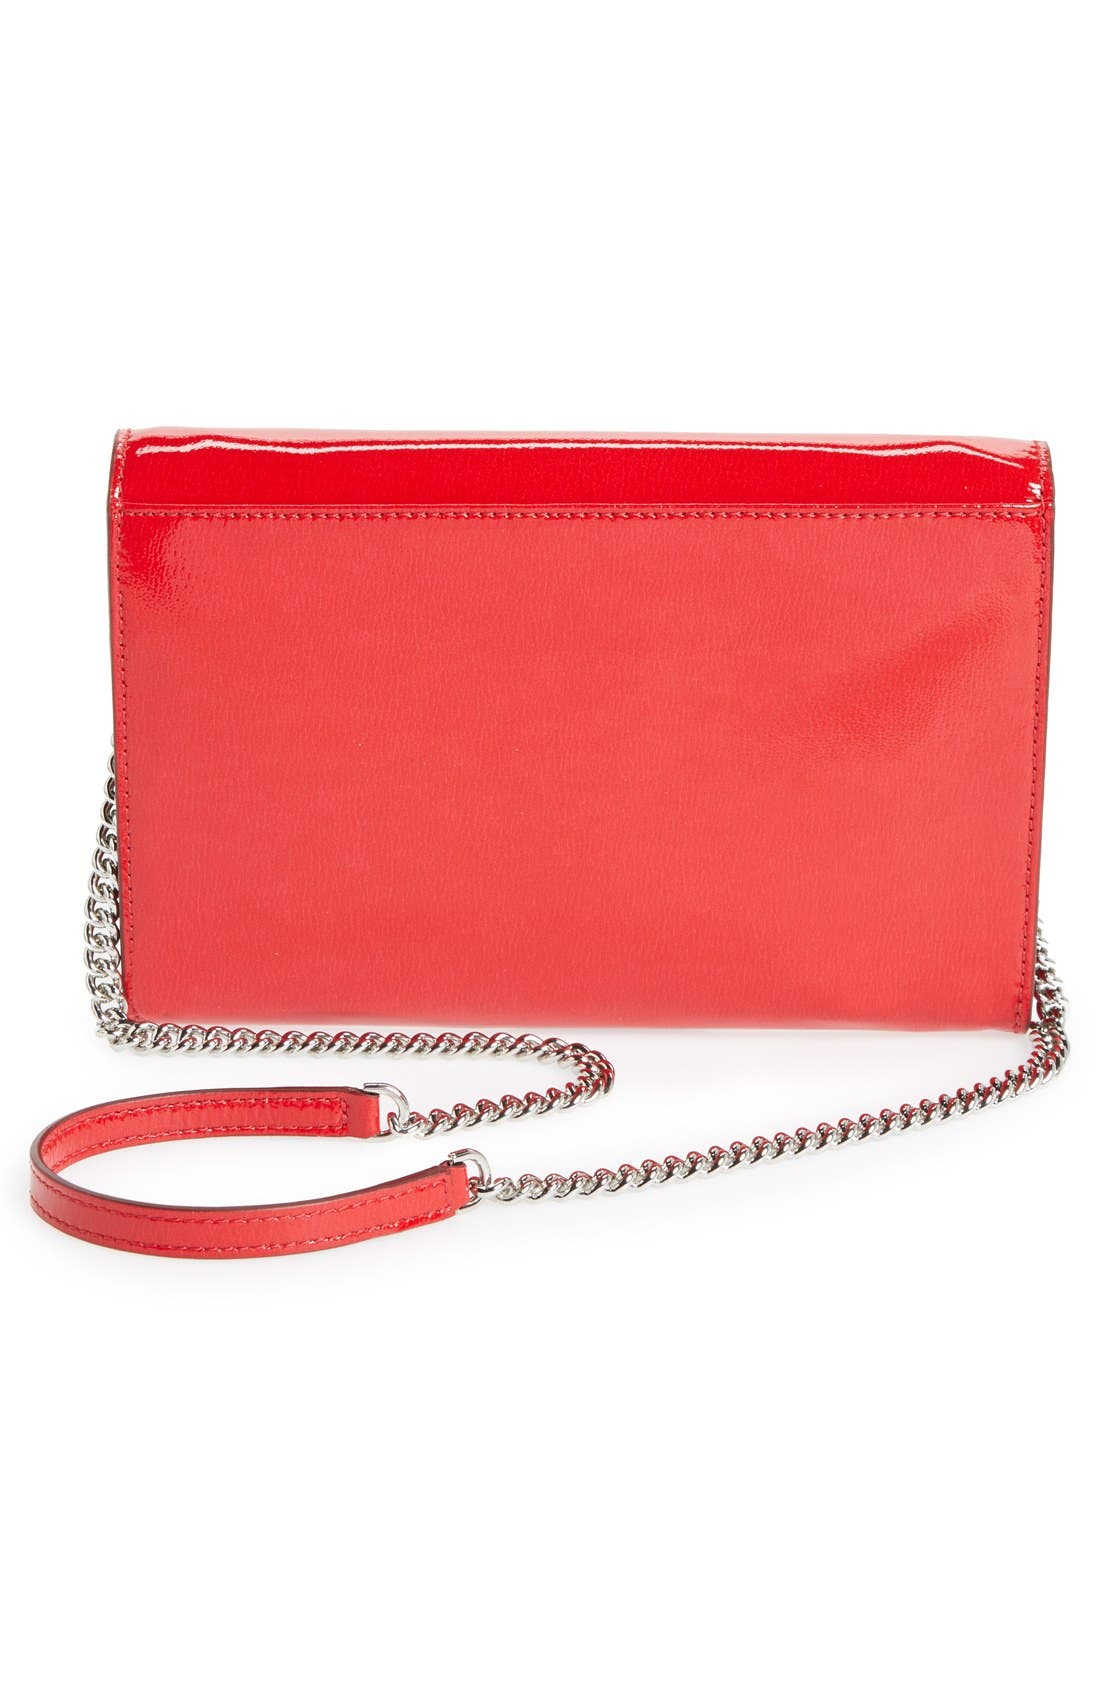 Alternate Image 4  - MARC BY MARC JACOBS 'Pegg' Patent Leather Clutch